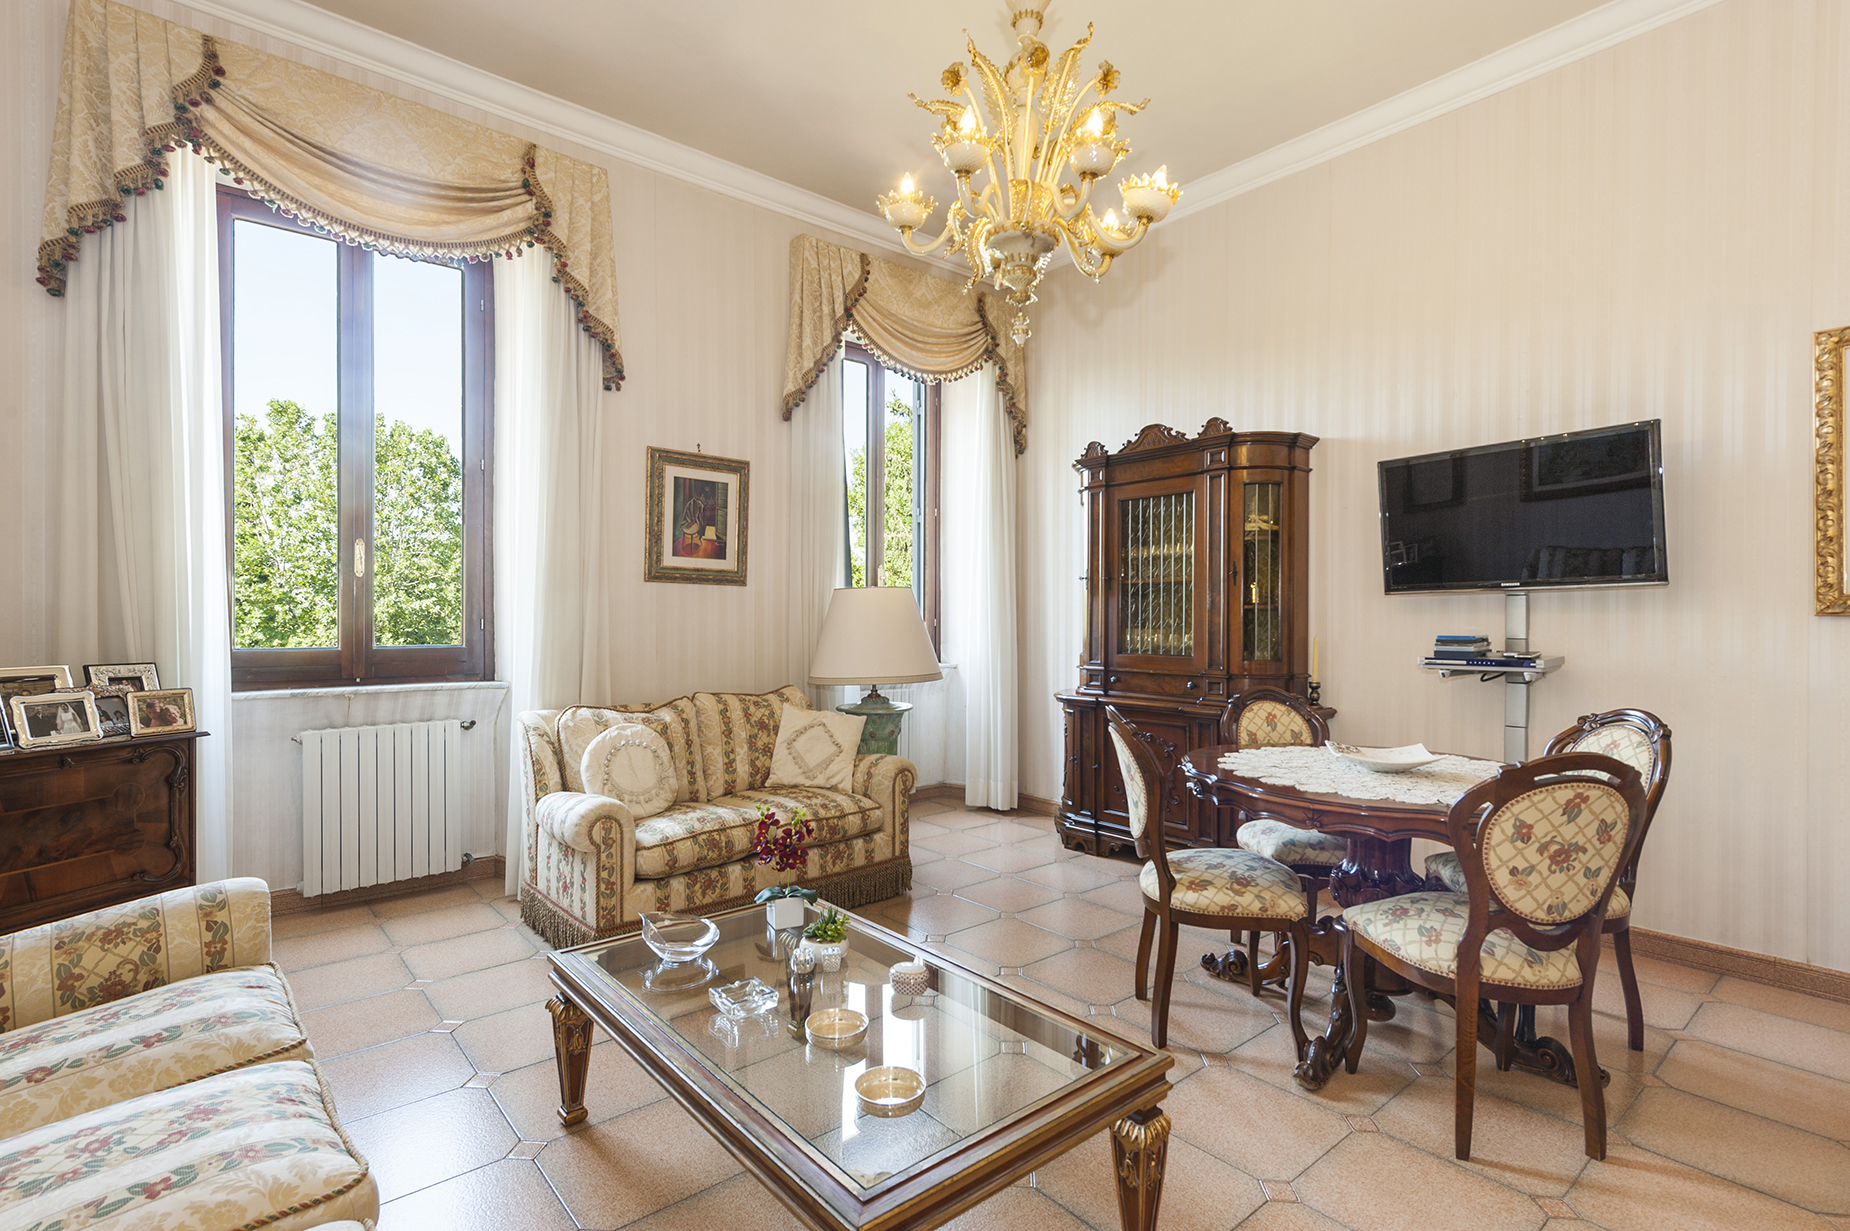 Apartamento por un Venta en Apartment in an exclusive building Ariccia, Roma Italia